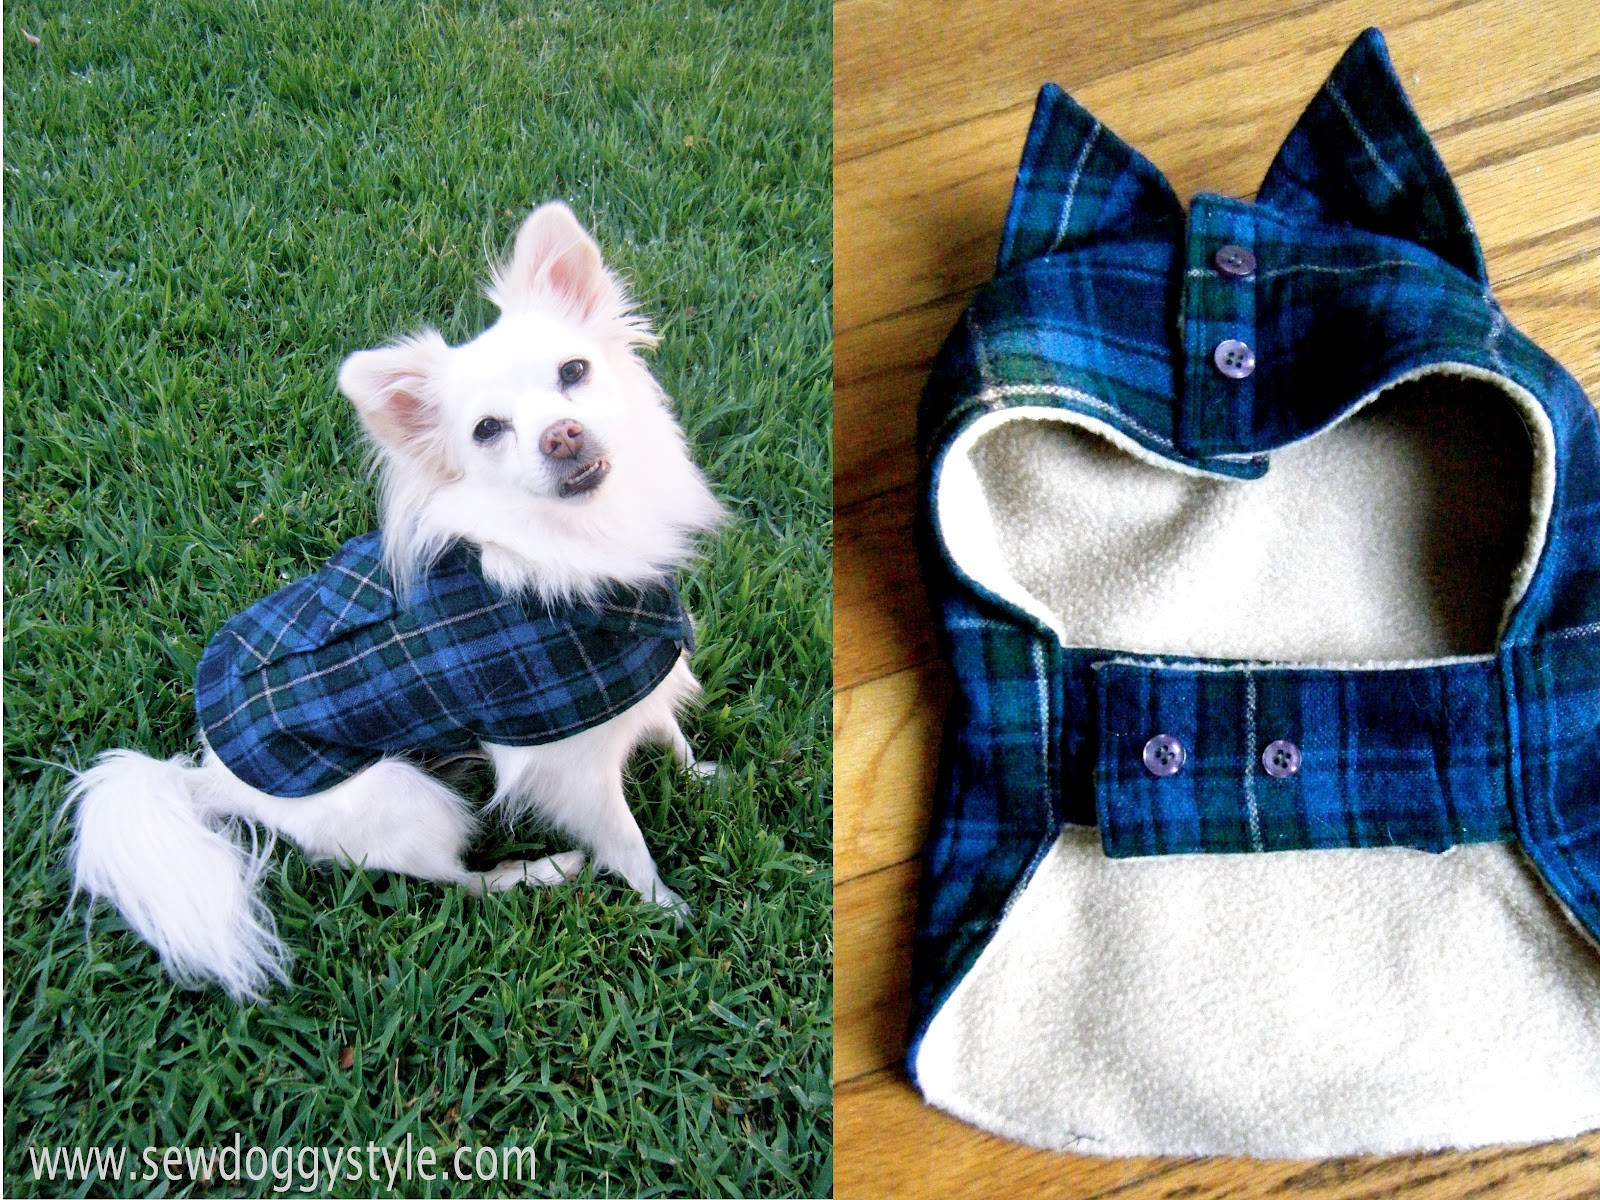 Dog Coat Pattern Inspirational Diy Pet Coat Pattern – Sewing It to Her Of Contemporary 40 Photos Dog Coat Pattern